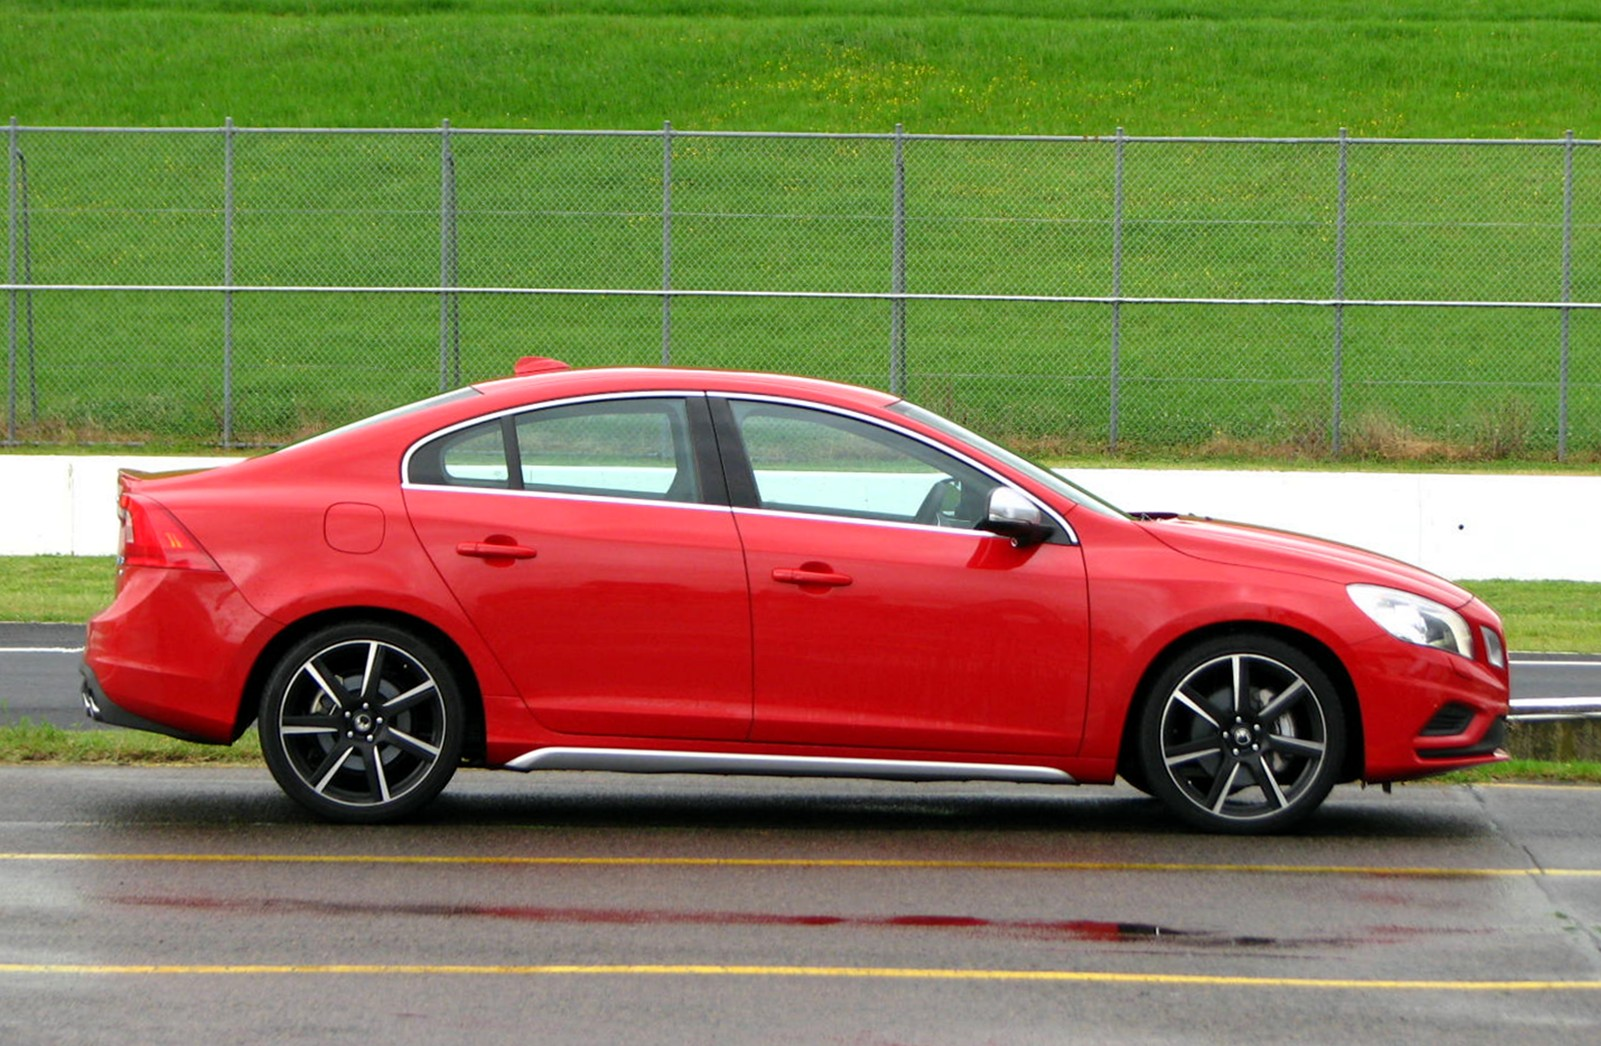 awd walkaround wr watch youtube r volvo tv polestar design